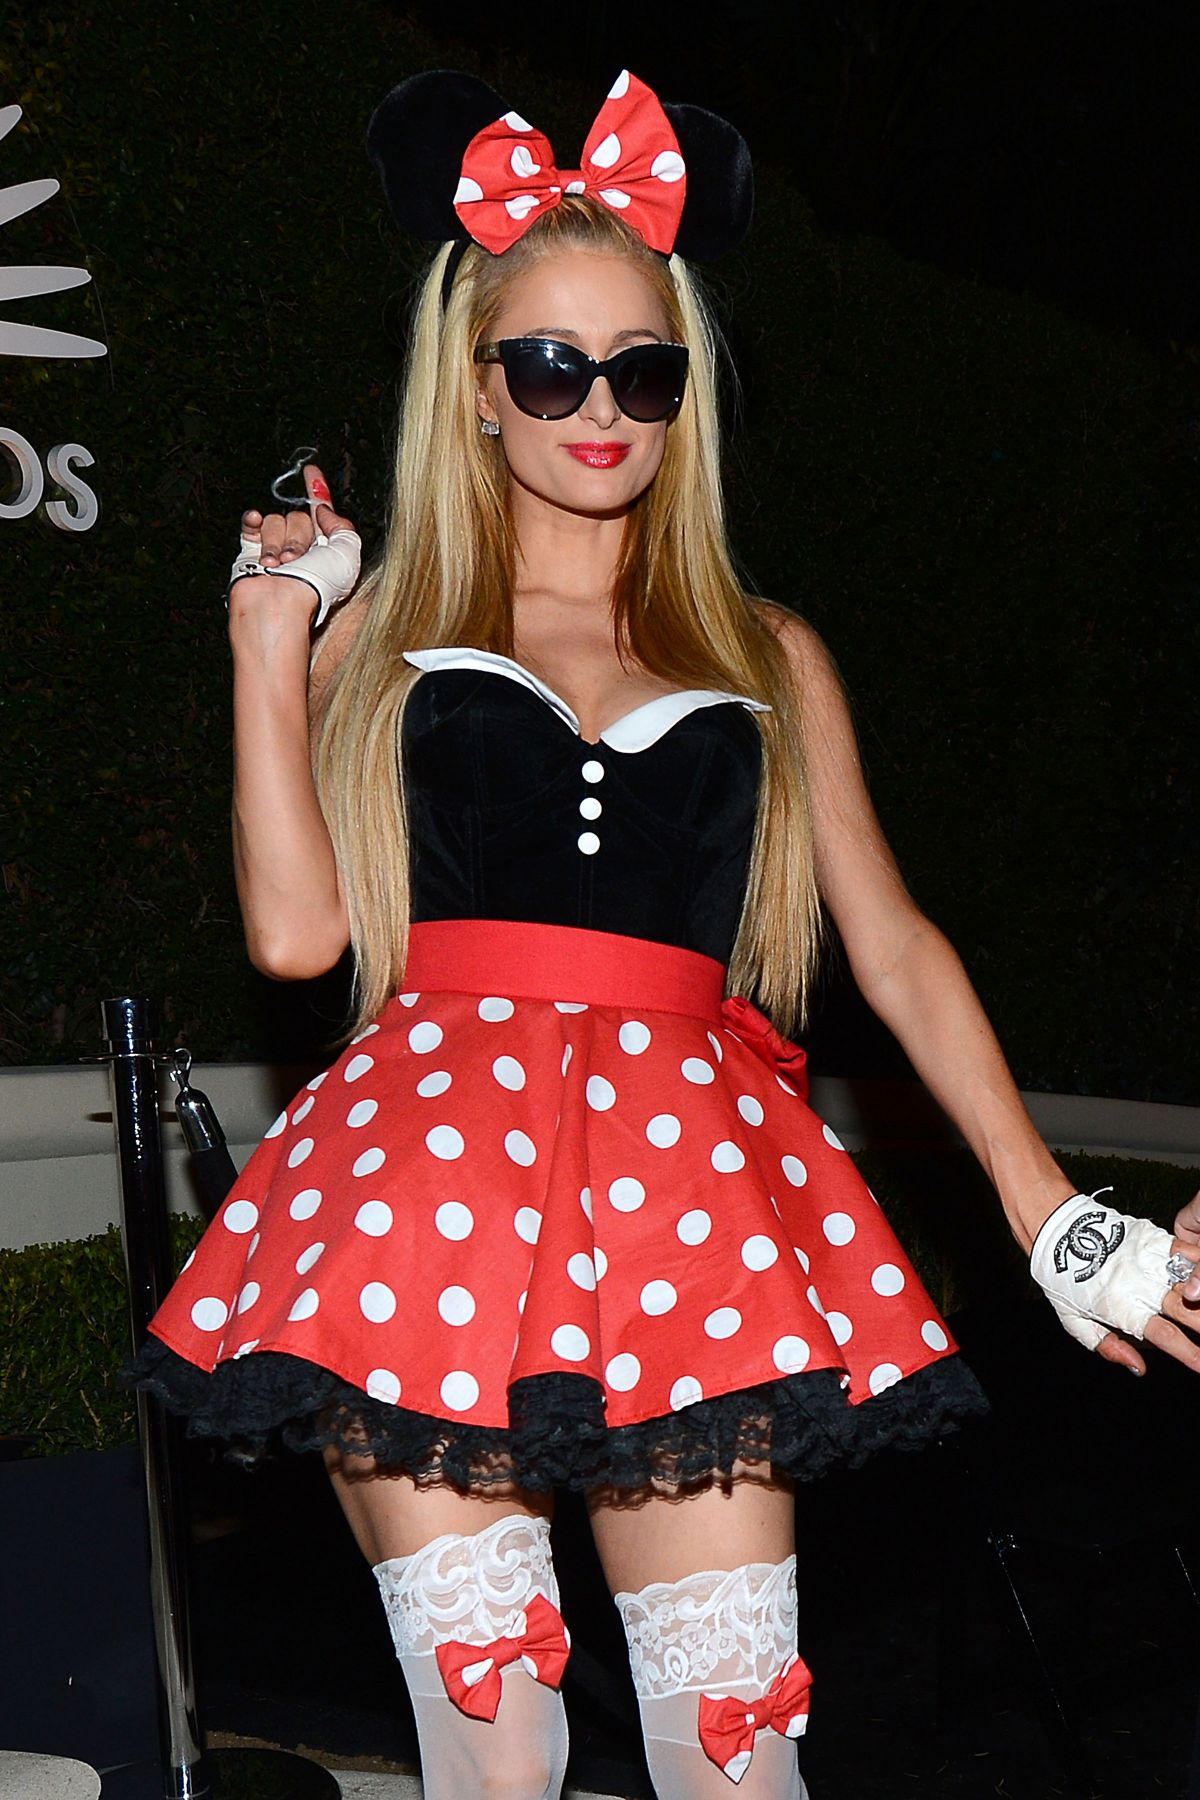 PARIS HILTON at a Halloween Party in Beverly Hills